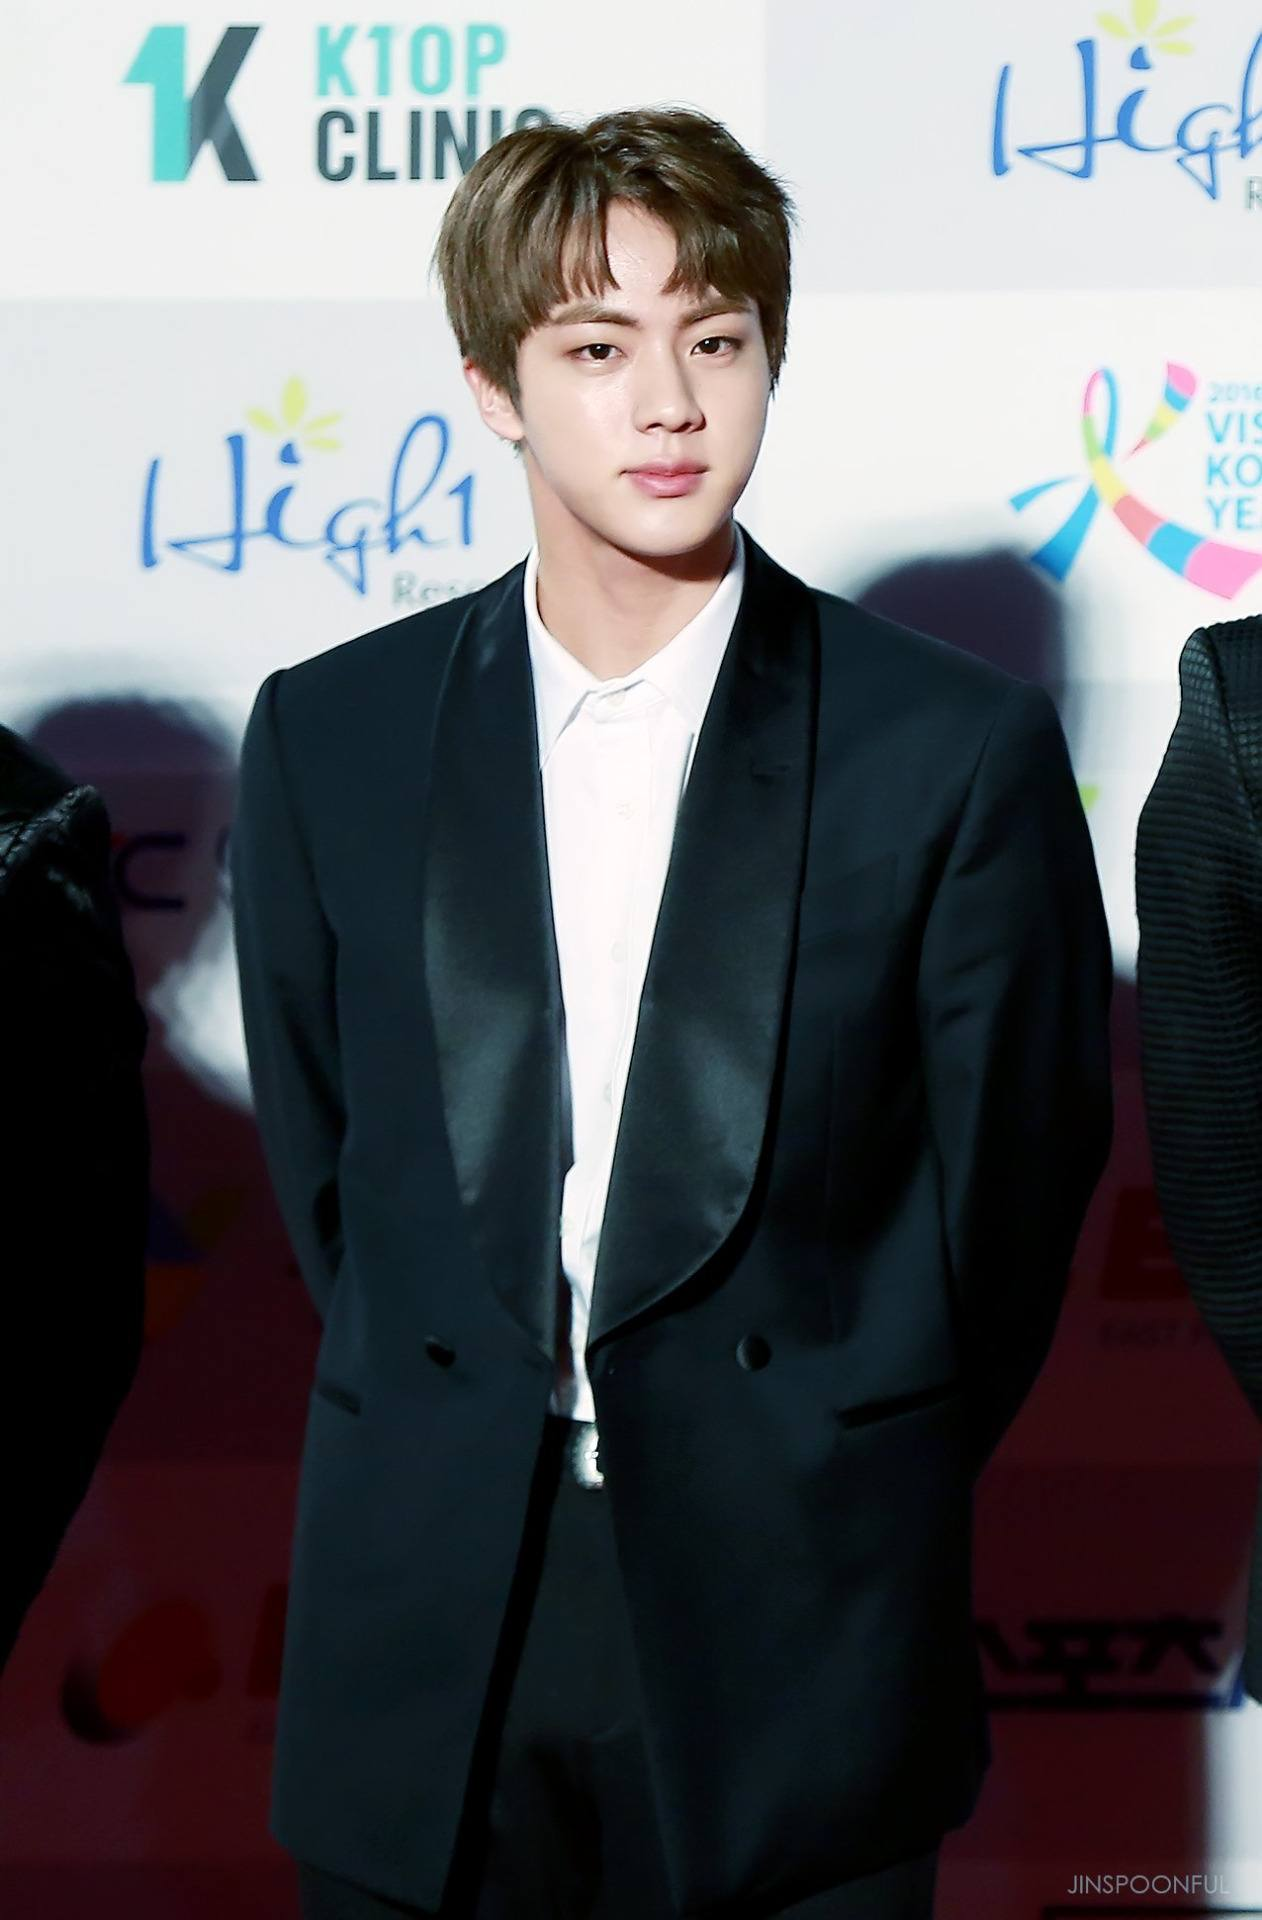 Bts Jin Is The Next Idol To Join The Choppy Bangs Trend